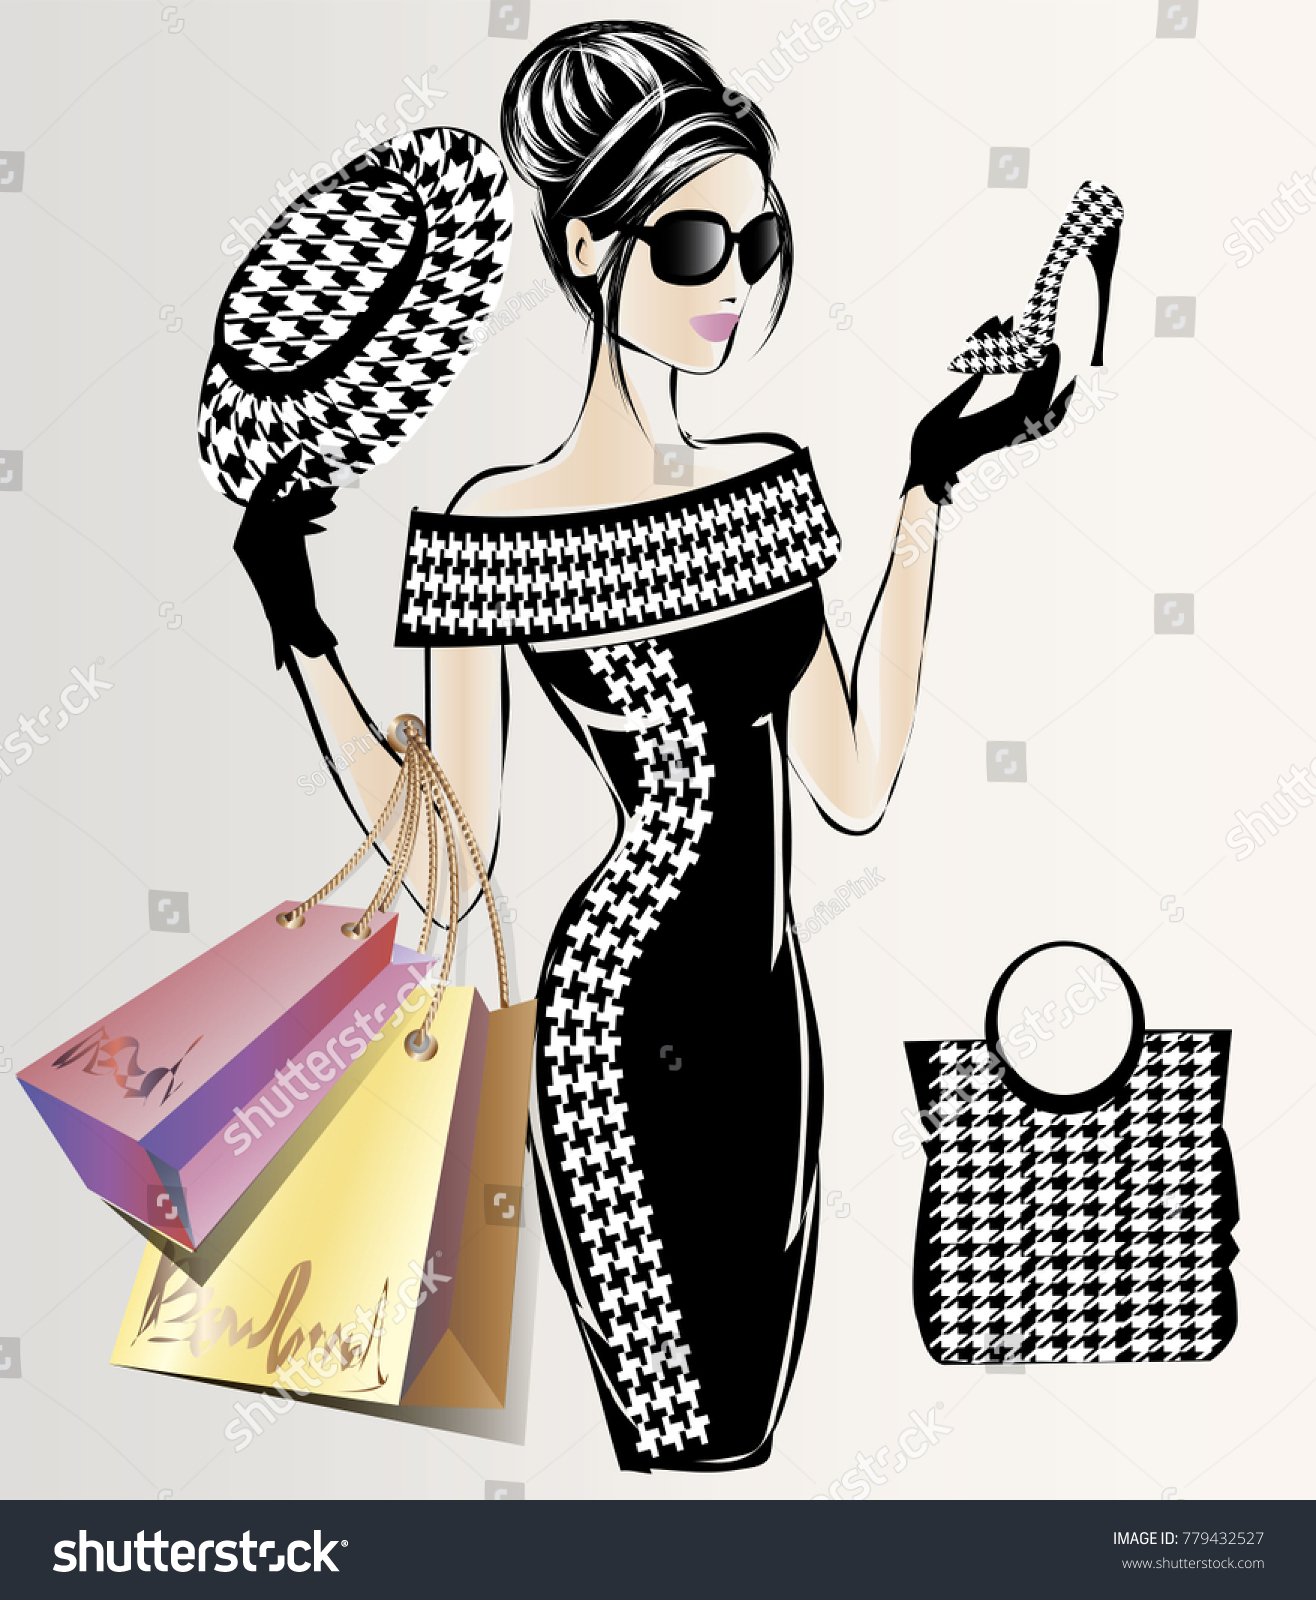 Fashion Sale Banner Woman Fashion Silhouette Stock Vector Royalty Free 779432527